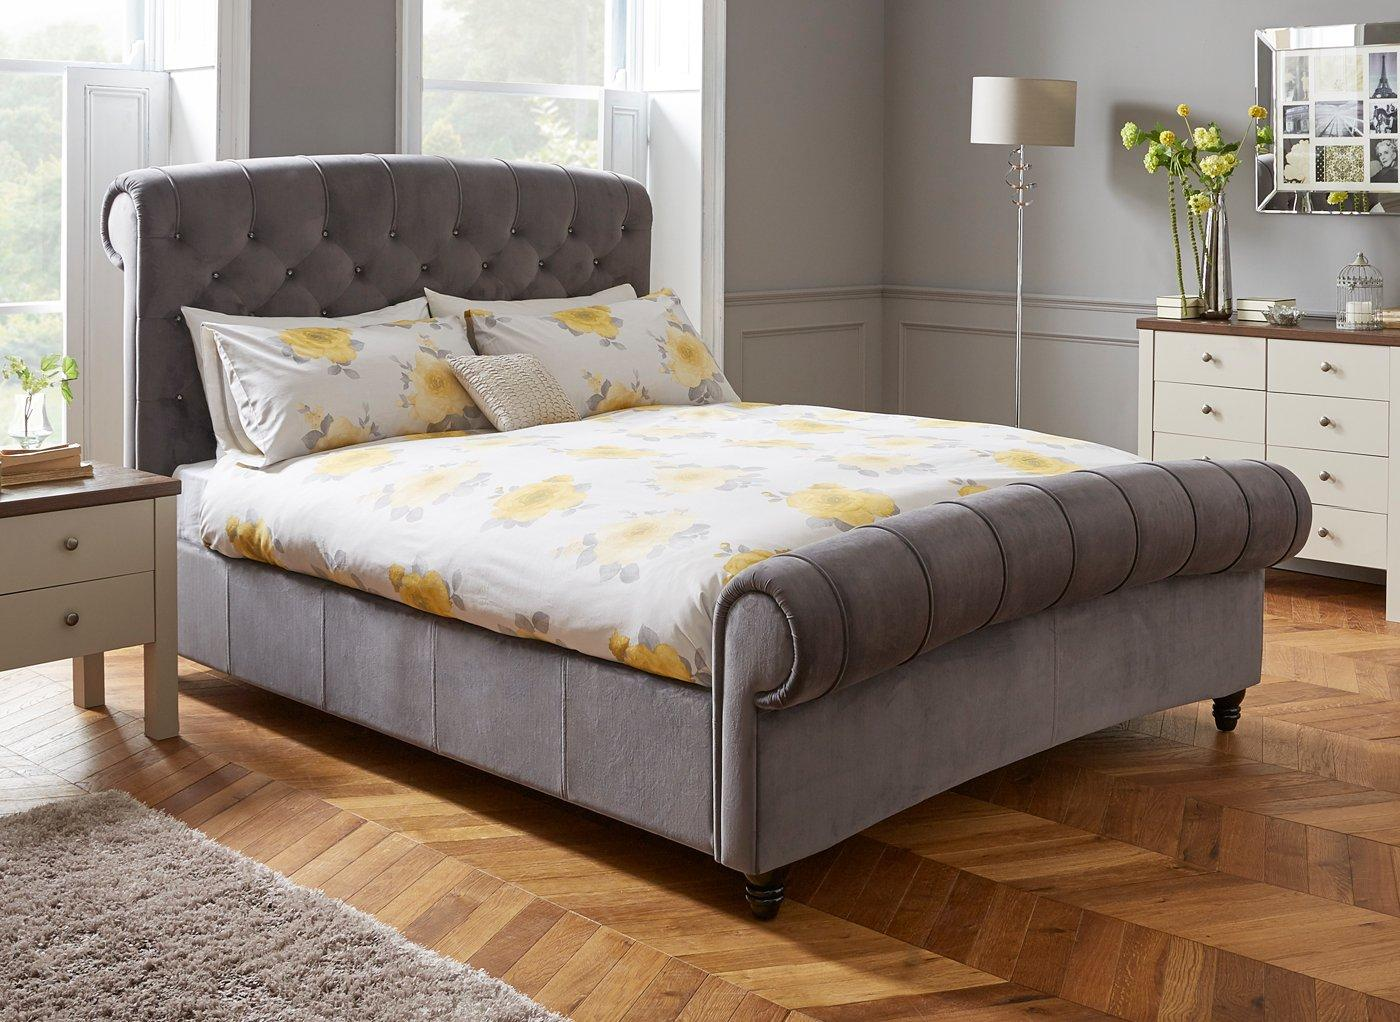 Ellis Dark Grey Velvet Finish Bed Frame 6'0 Super king